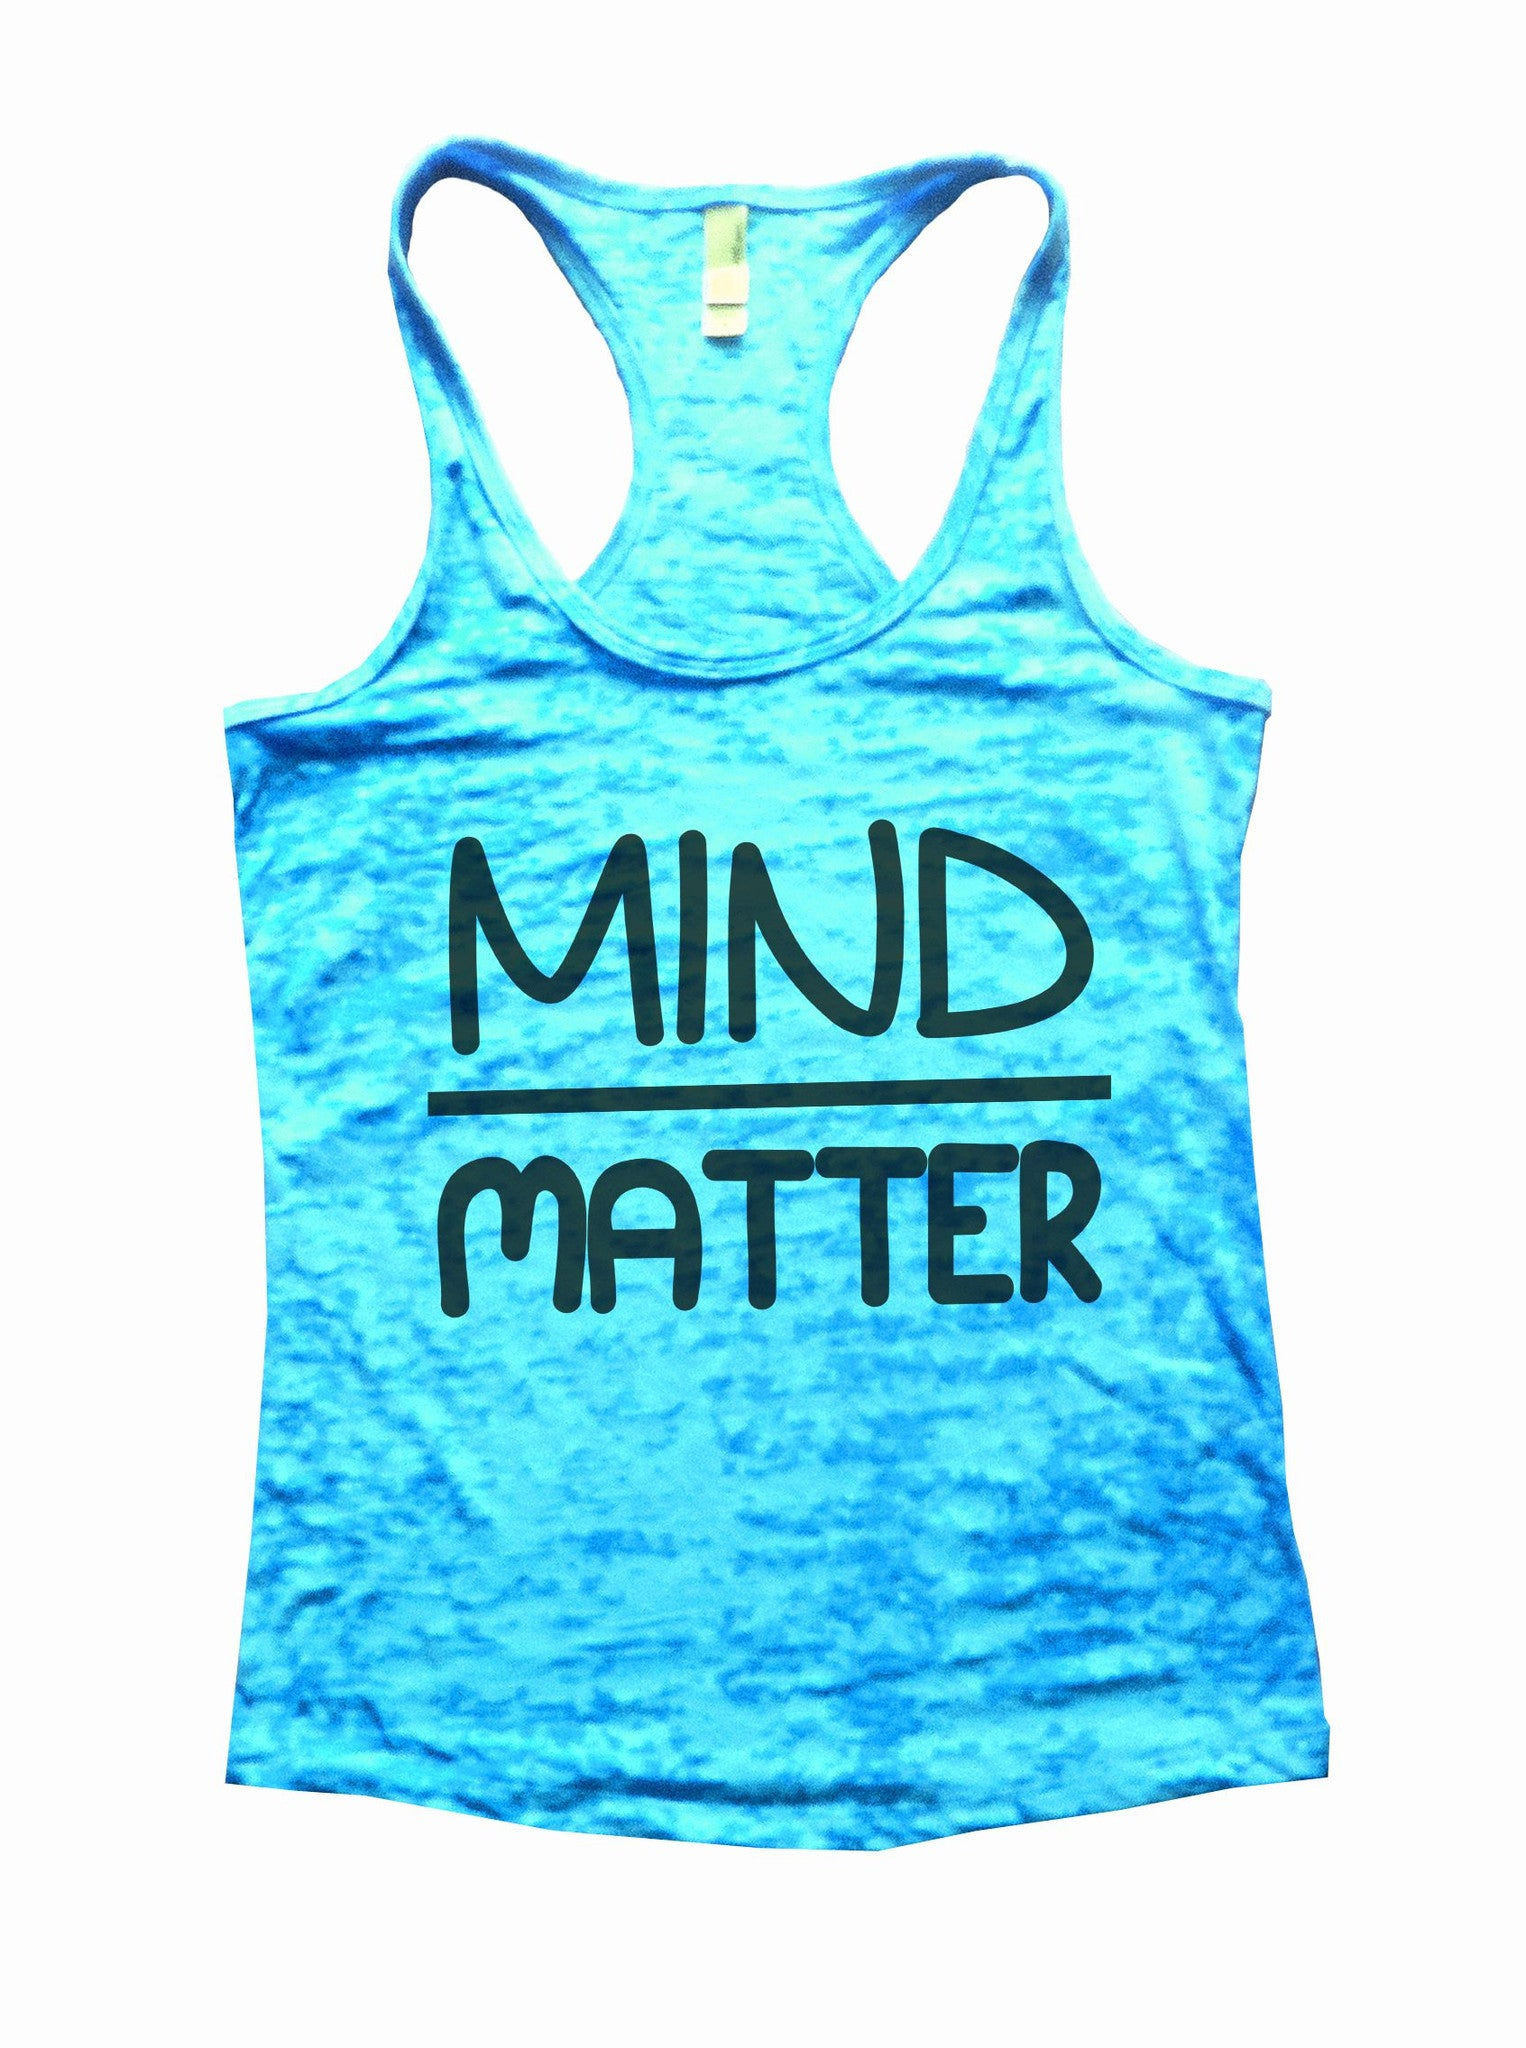 Mind Matter Burnout Tank Top By BurnoutTankTops.com - 655 - Funny Shirts Tank Tops Burnouts and Triblends  - 4